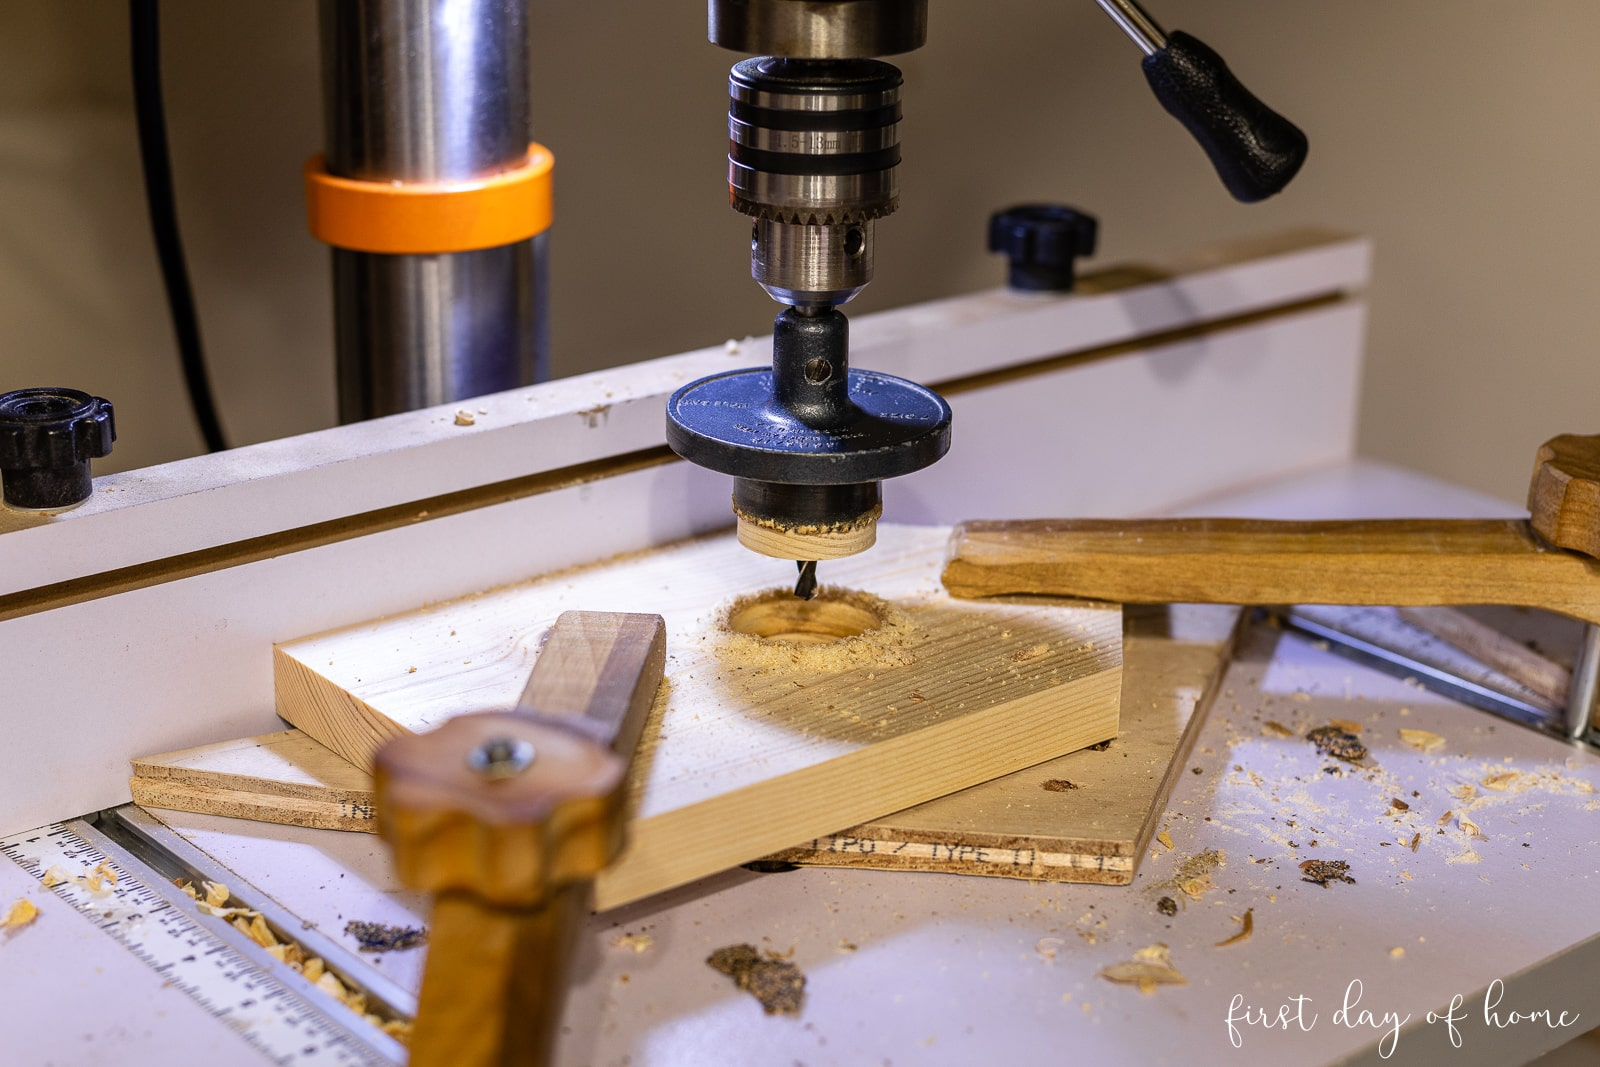 Using drill press to cut hole in birdhouse